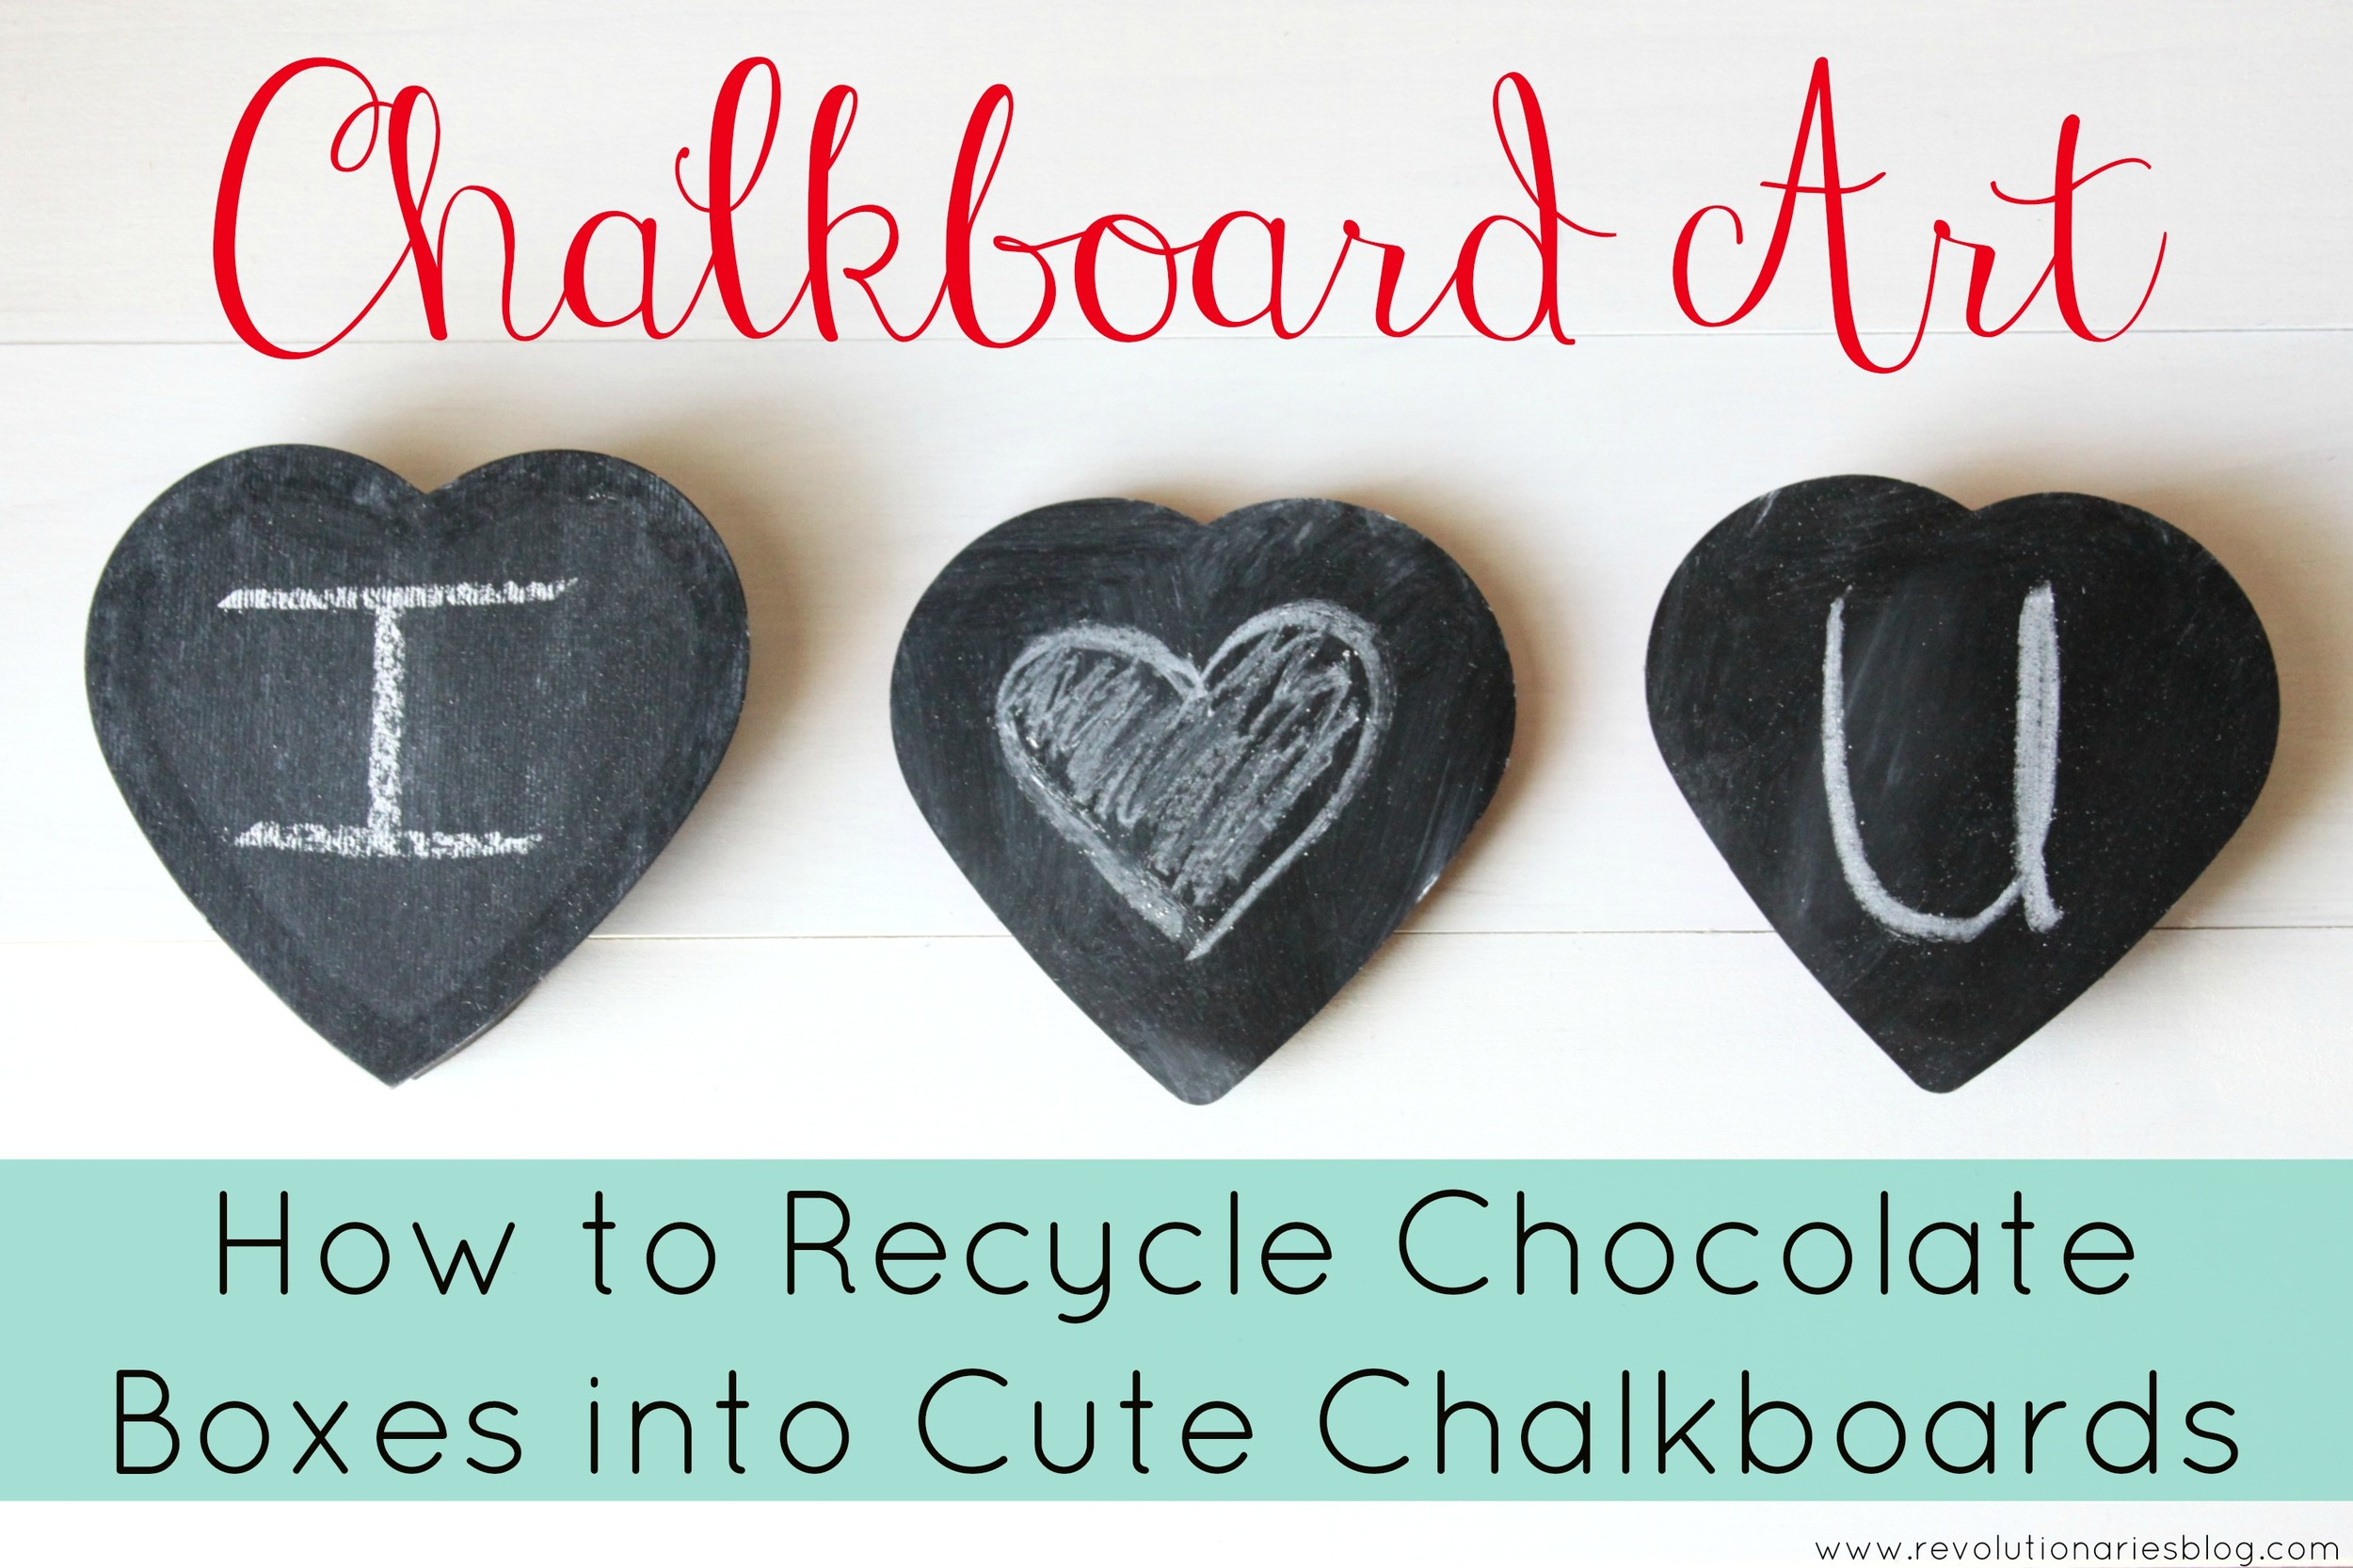 chalkboard-art-how-to-recycle-chocolate-boxes-into-cute-chalkboards.jpg